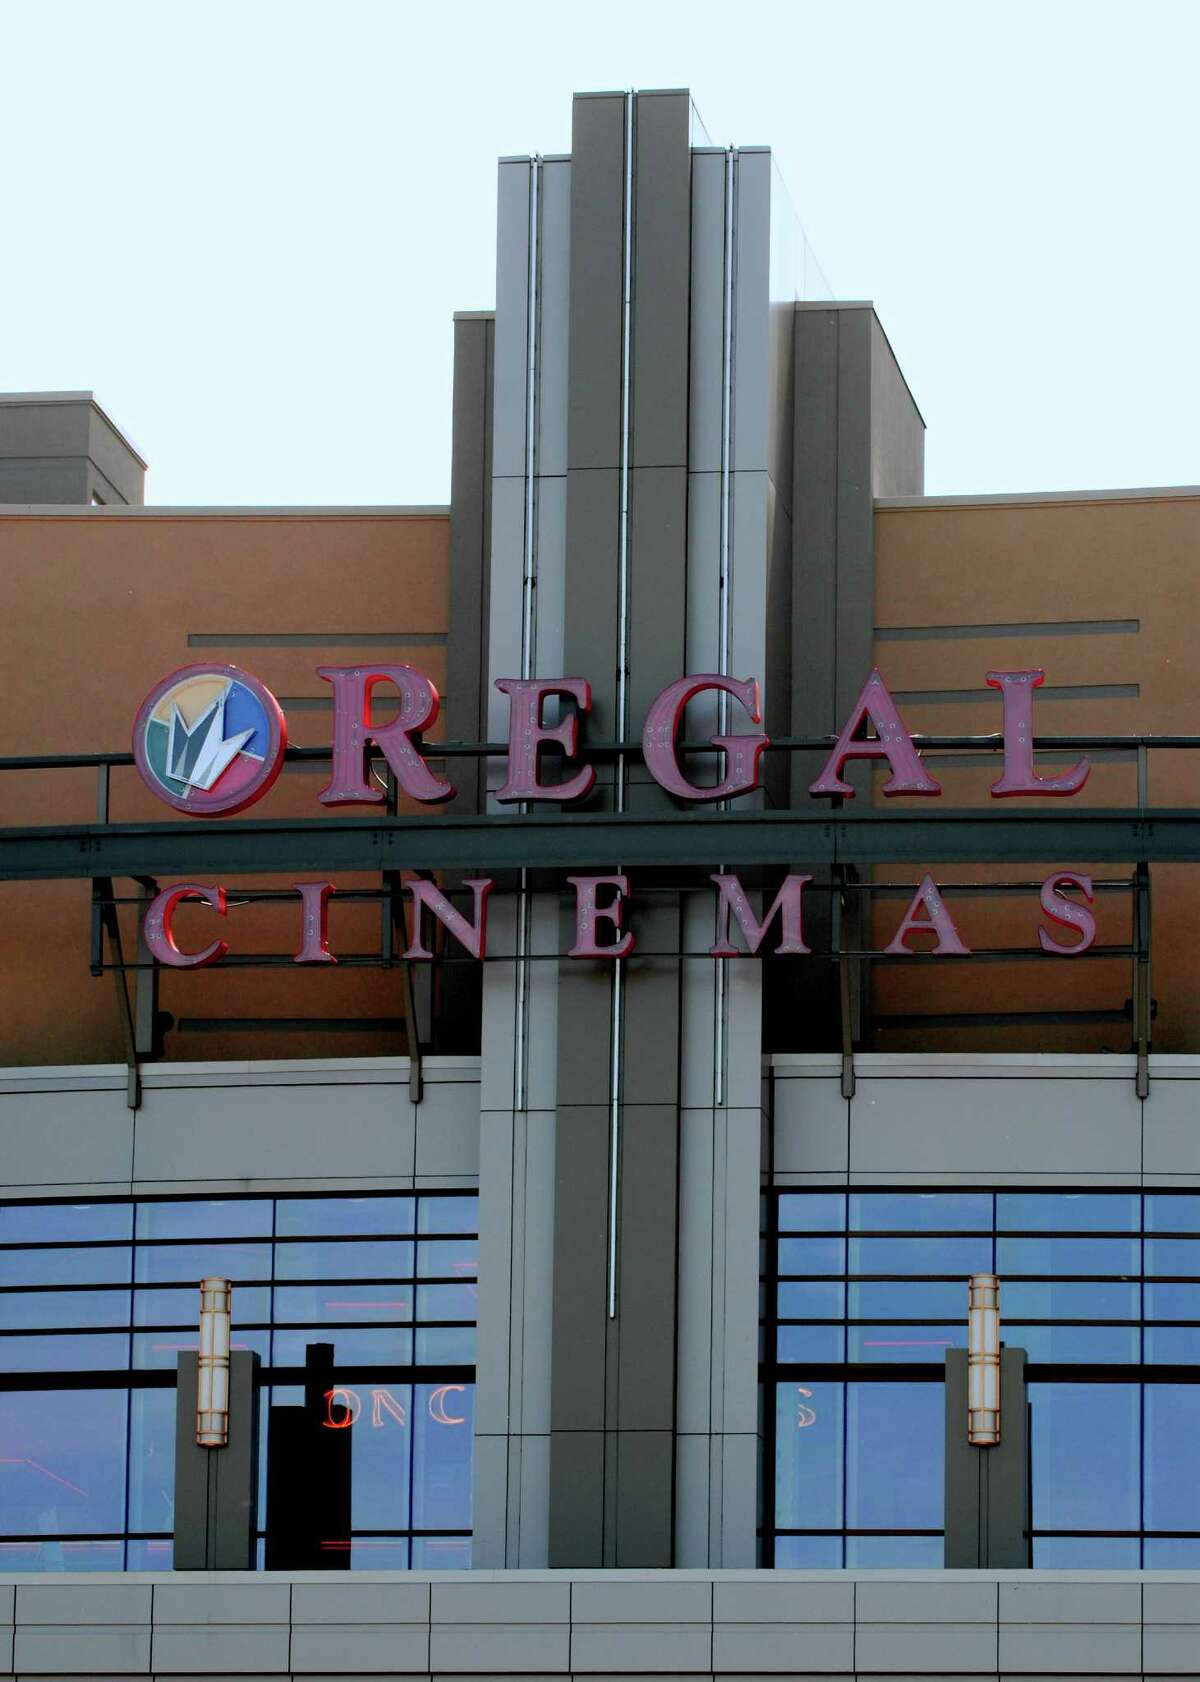 Regal Cinemas The Summer Movie Express family movie series kicks off June 27 at Regal Crossgates Stadium 18 & IMAX and Regal Clifton Park Stadium. Admission is only $1. All movies start at 10 a.m. Tuesdays and Wednesdays. Each week both movies play on both days. You can also grab popcorn for just $2. http://www.regalcinemas.com. Schedule: June 27-28: